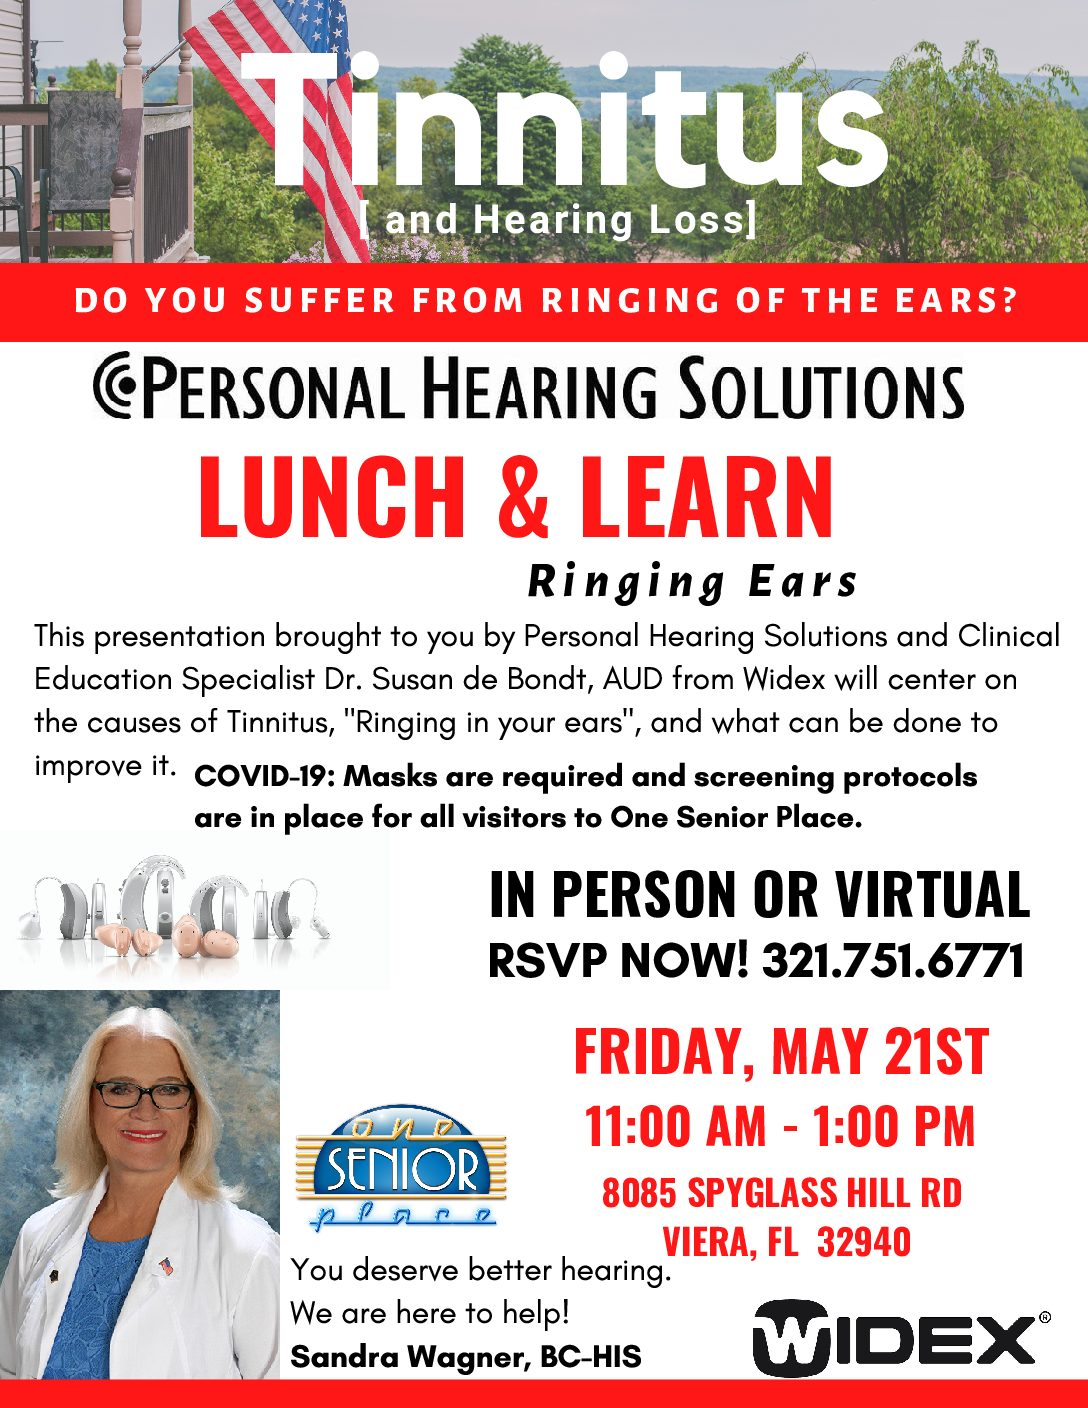 Tinnitus [and hearing loss] Lunch and Learn Seminar presented by Personal Hearing Solutions